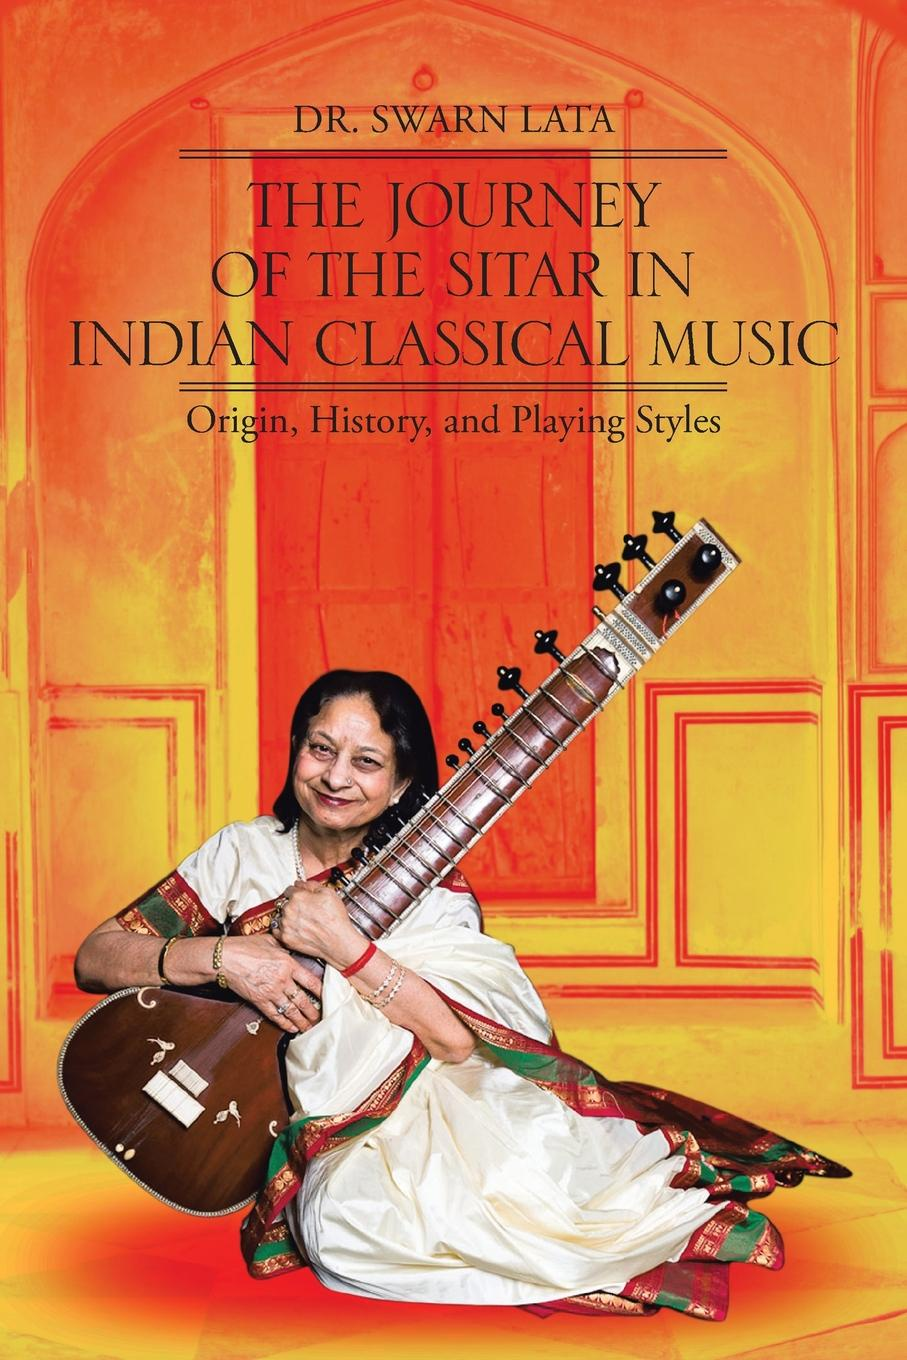 Dr. Swarn Lata. The Journey of the Sitar in Indian Classical Music. Origin, History, and Playing Styles